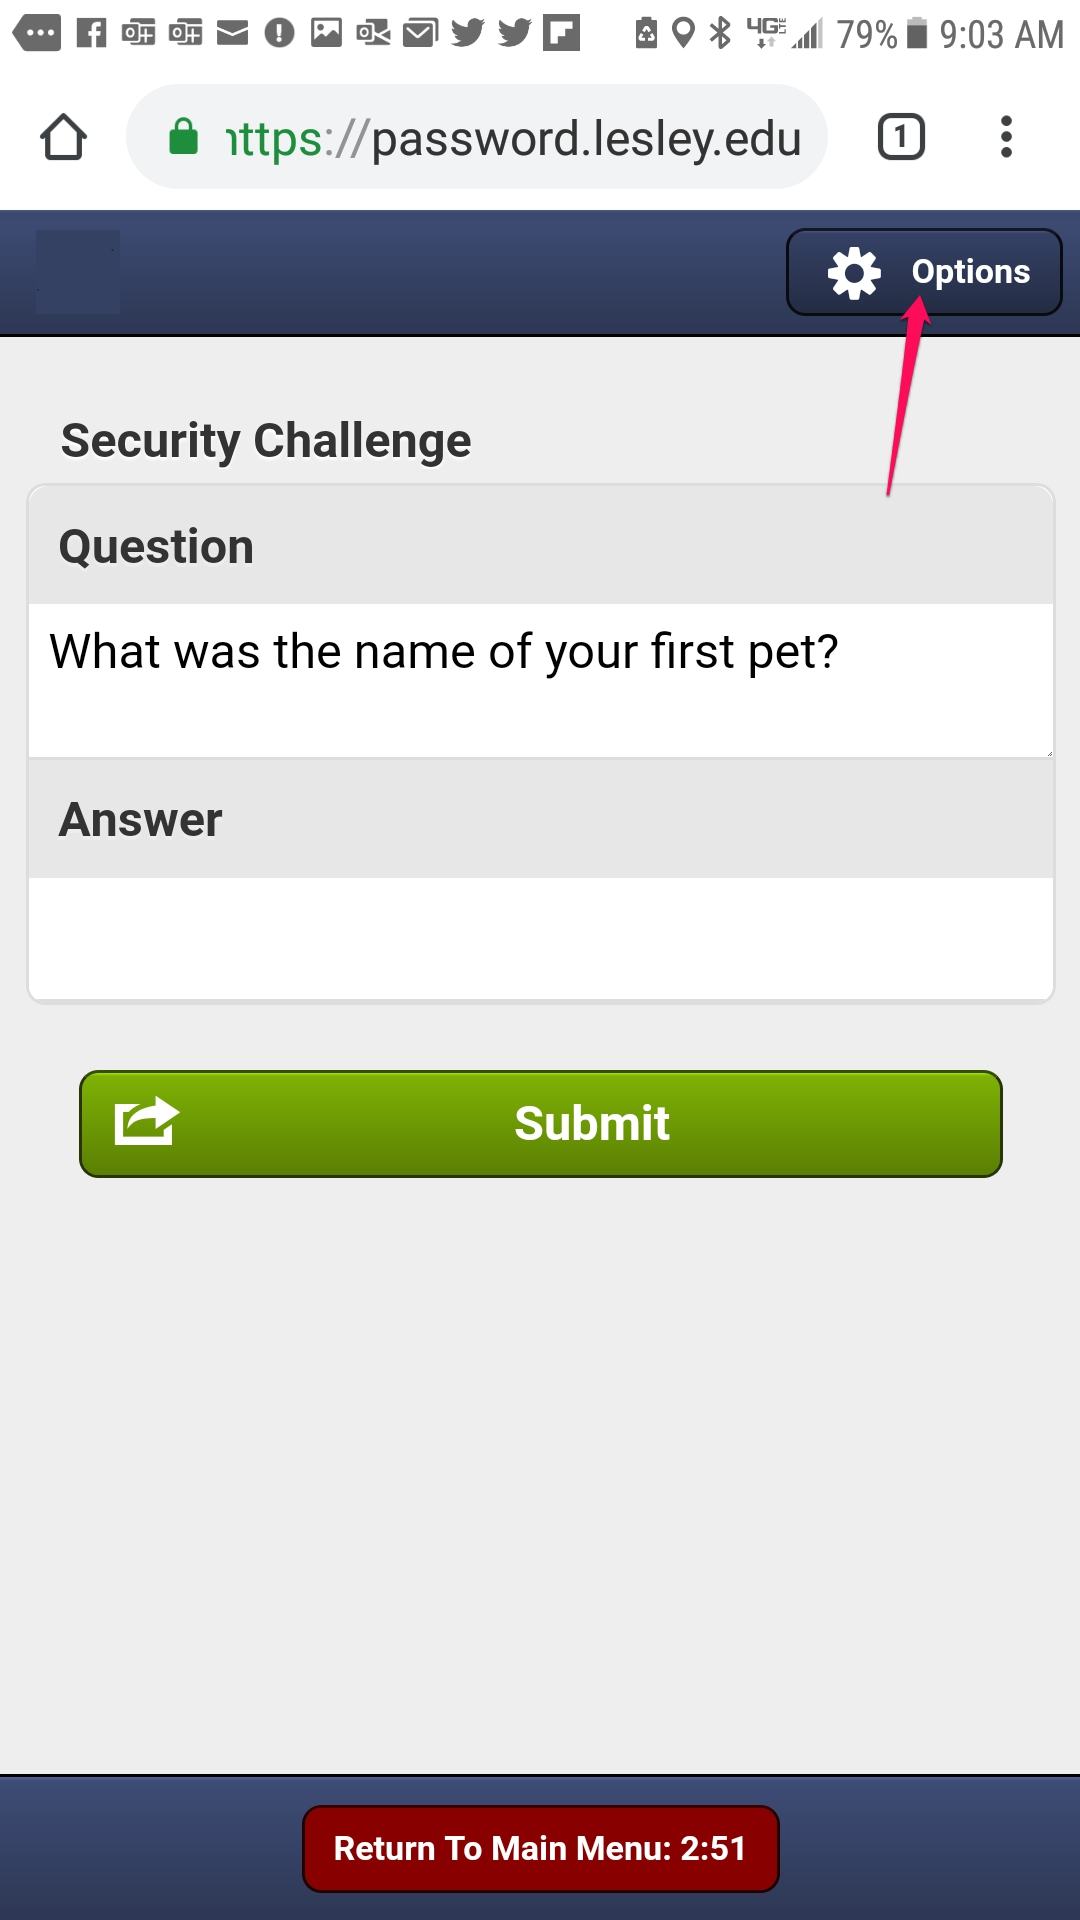 Security questions or Option button